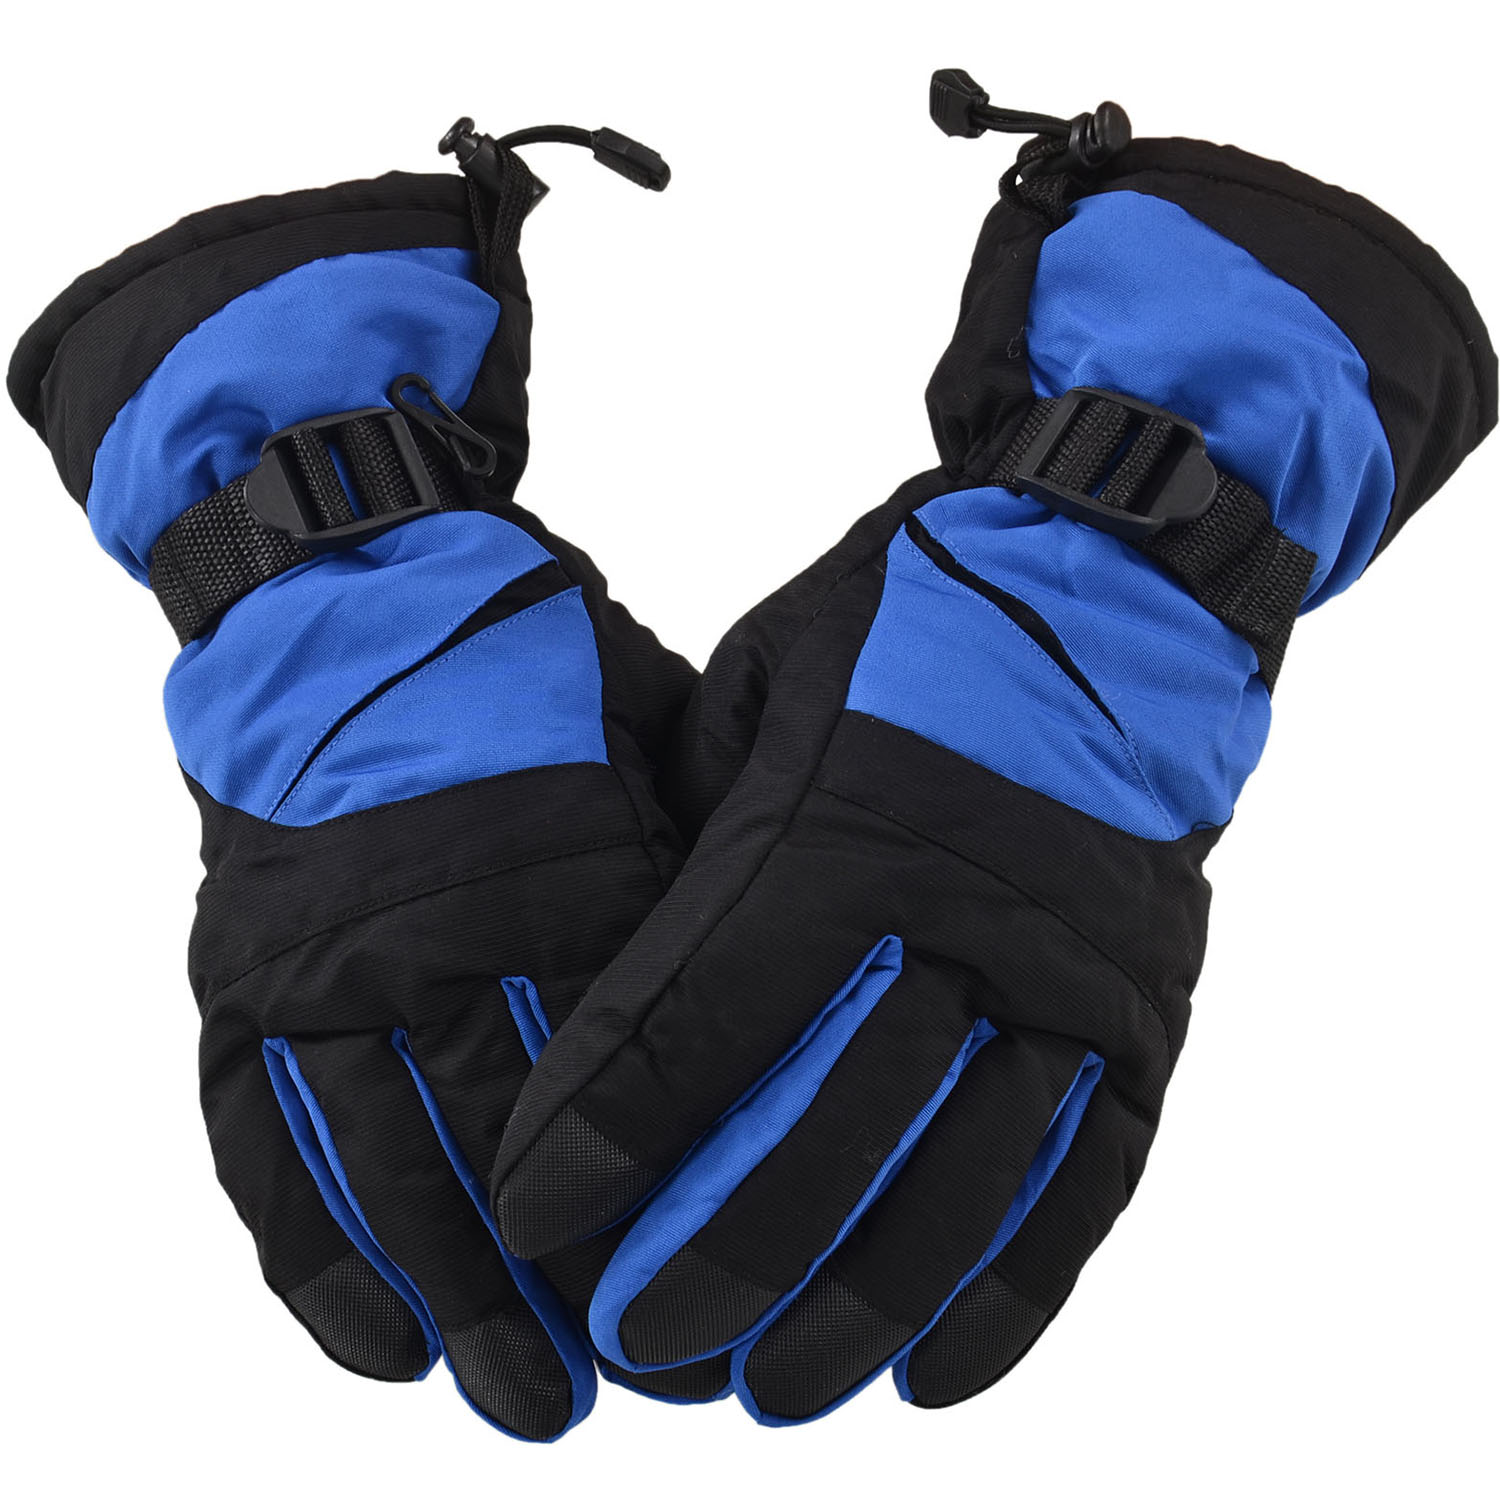 Simplicity Men's Winter Waterproof Ski Gloves for Sports & Camping,Blue Black by